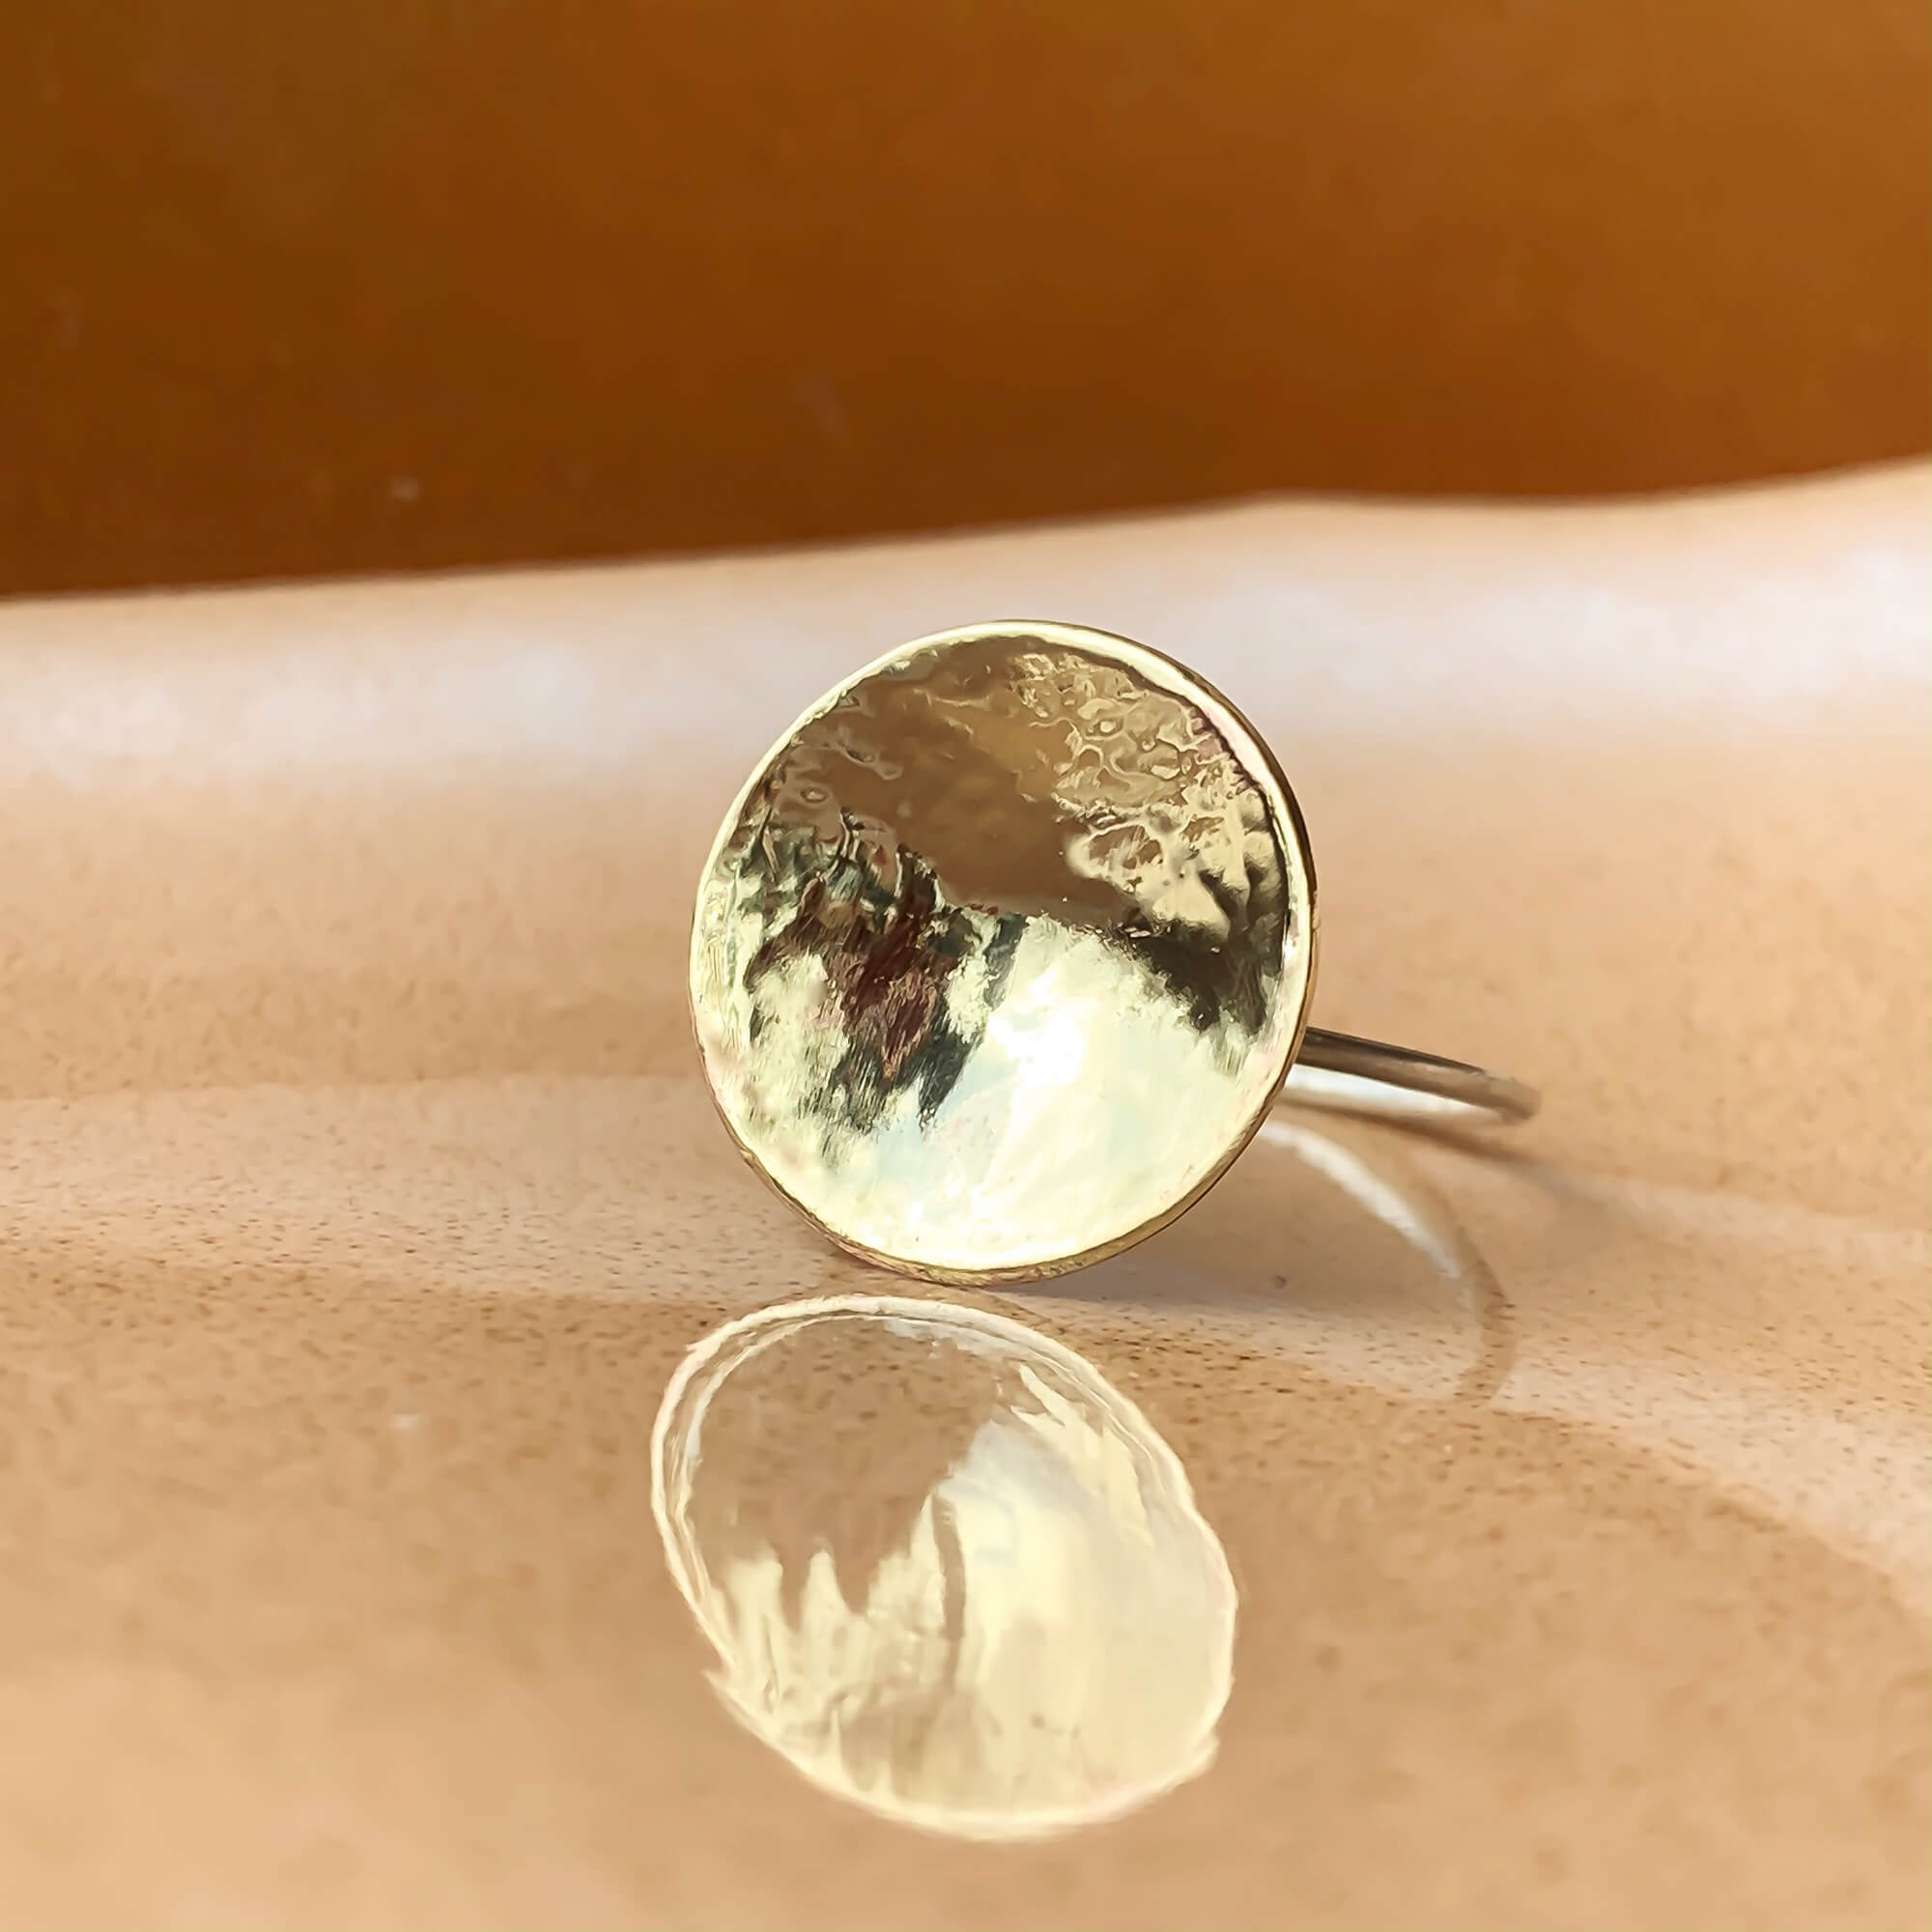 Circla Ring - Eco Silver with Brass